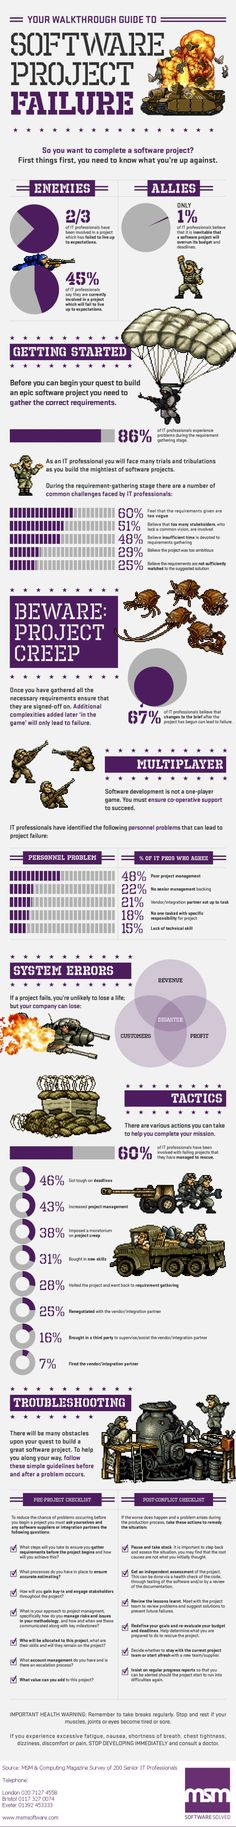 Your Walkthrough Guide to Software Project Failure [INFOGRAPHIC]